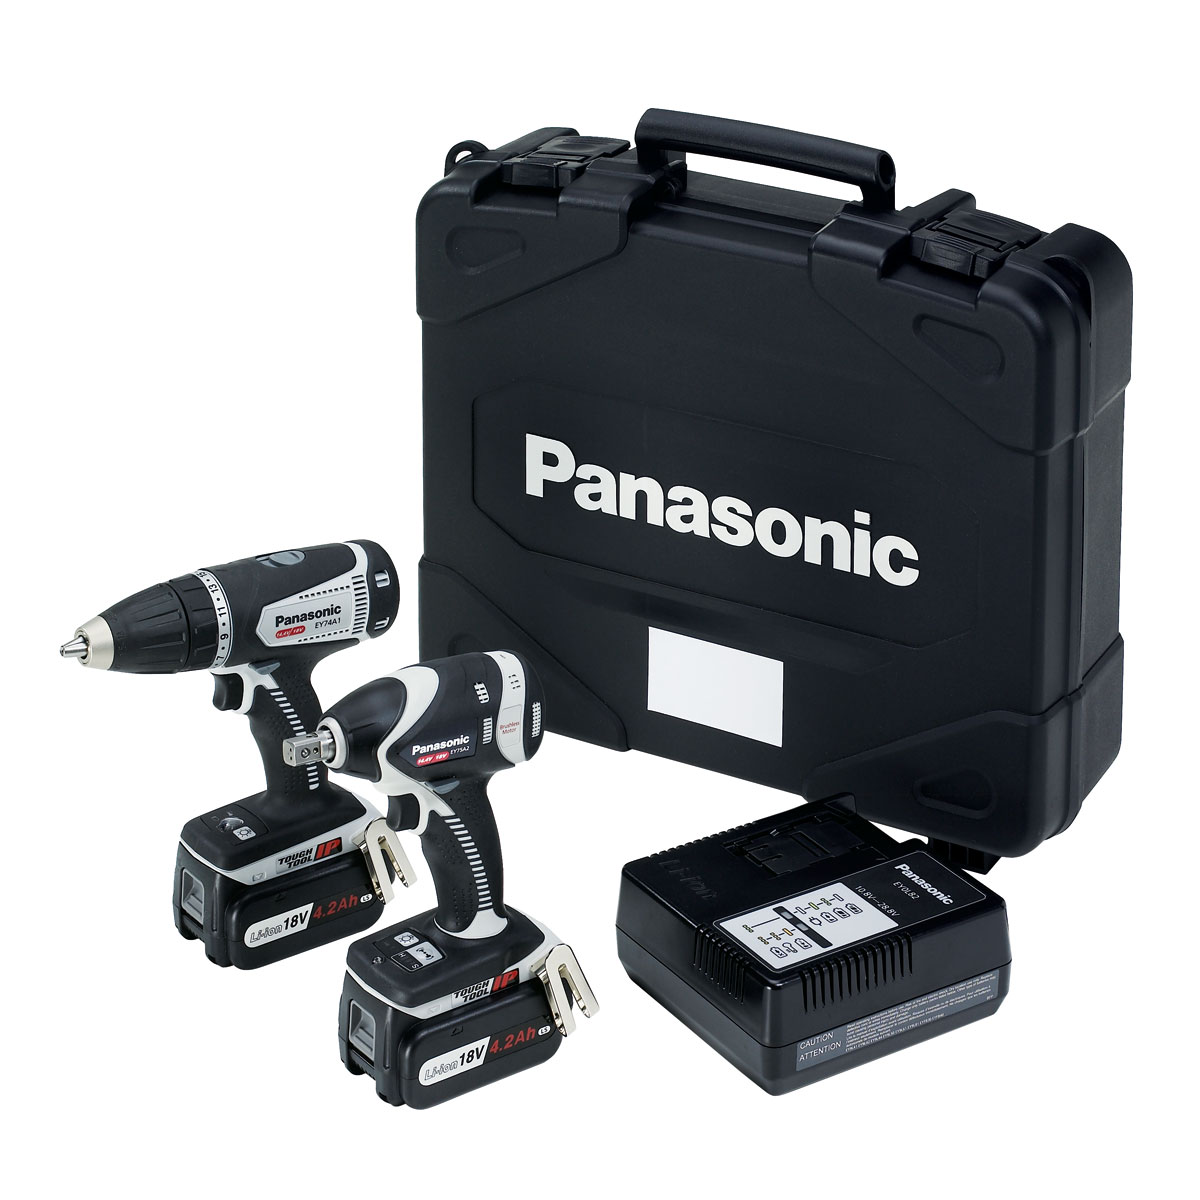 PANASONIC EYC211LS2F31 14.4V DRILL DRIVER & IMPACT WRENCH TWIN PACK 2 X 4.2AH LI-ION BATTERIES